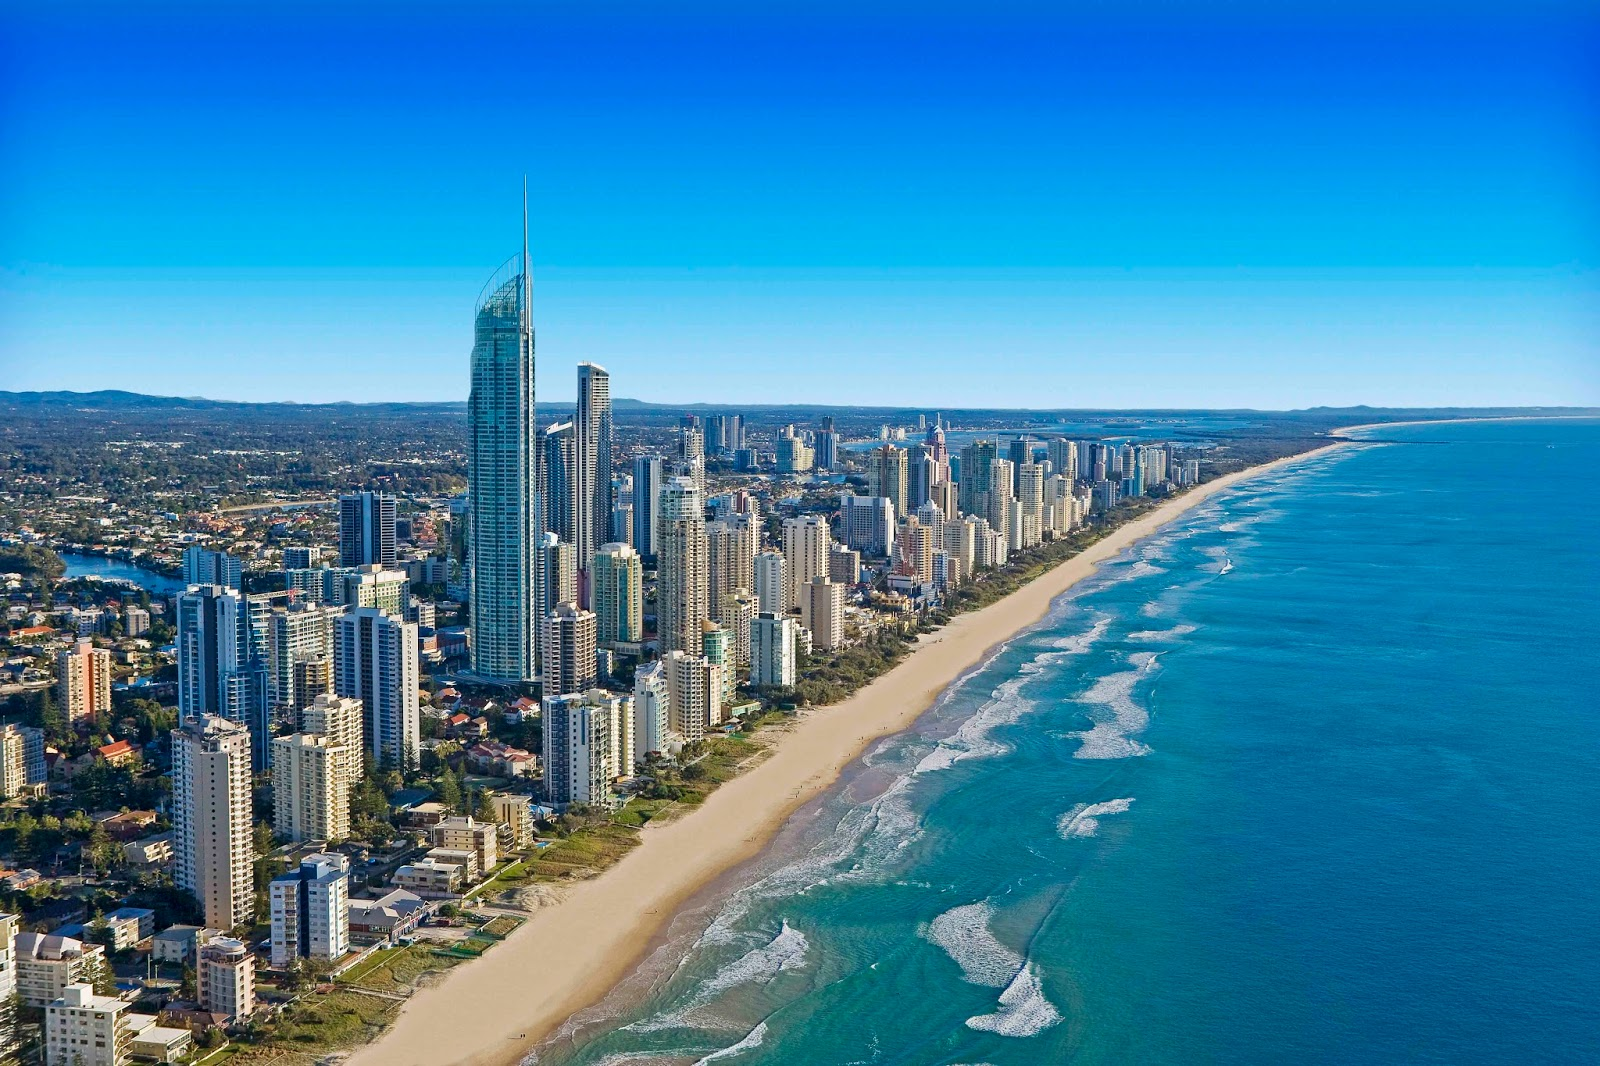 NSW RADIO AND COMMUNICATIONS - by Michael Bailey: GOLD COAST